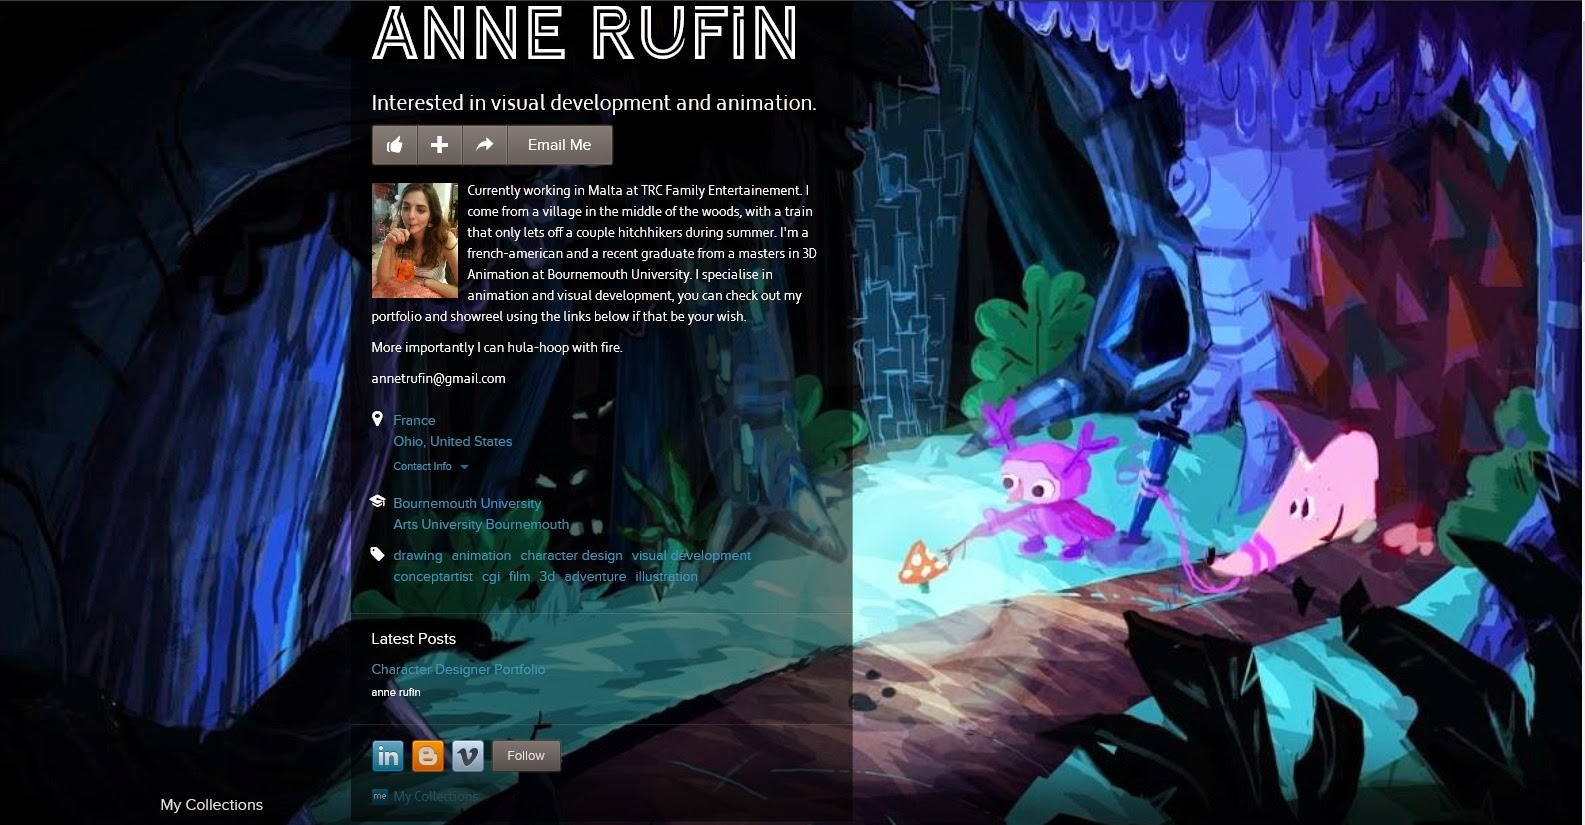 An image of Anne Rufin's (Character Designer and Animator) about.me page